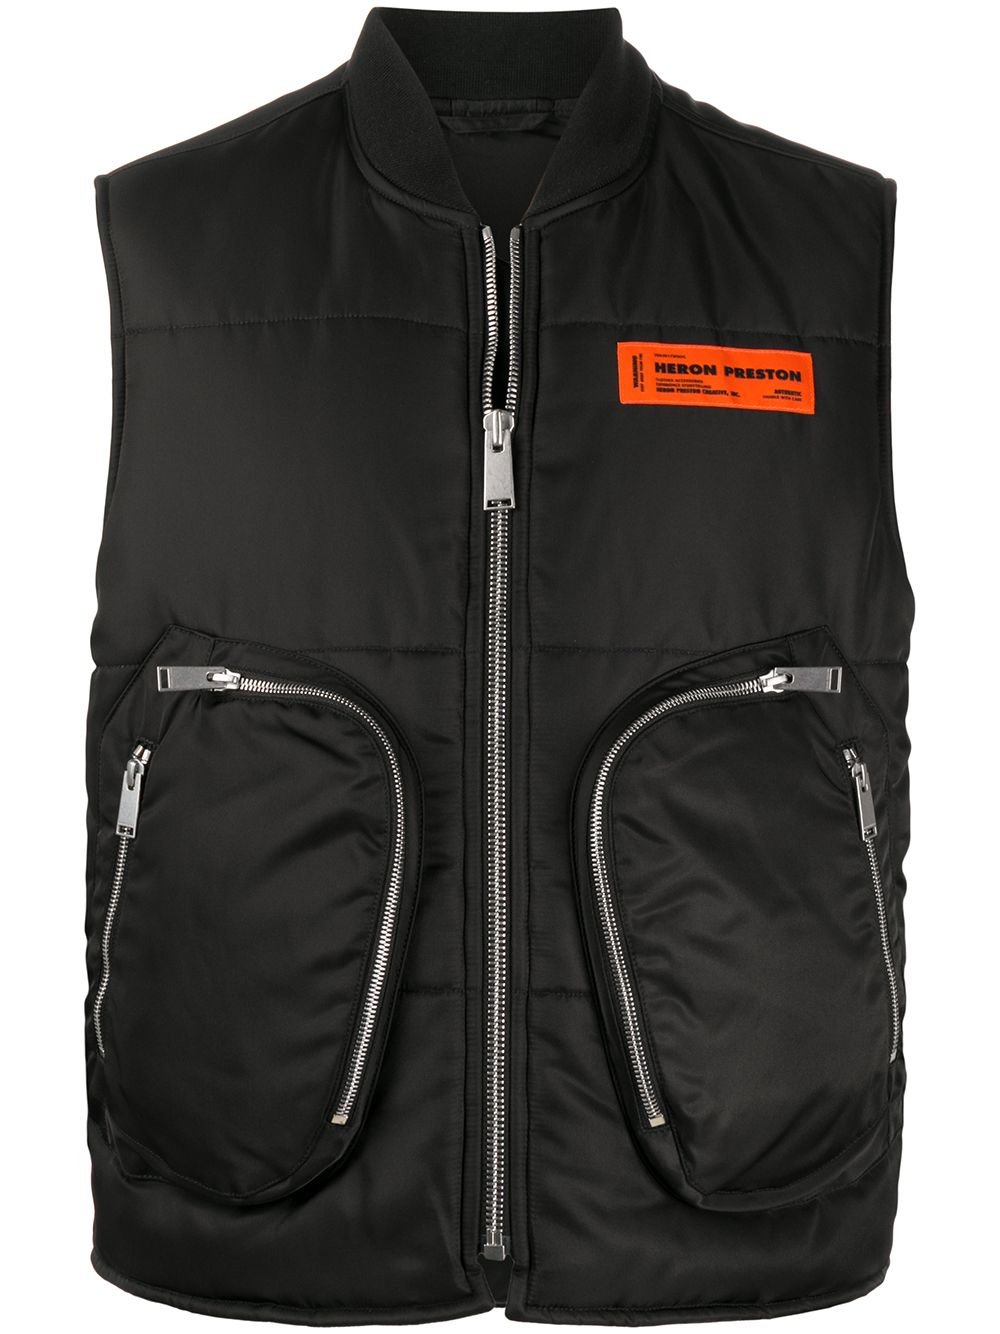 HERON PRESTON Multi Pocket Padded Gilet Black - Maison De Fashion